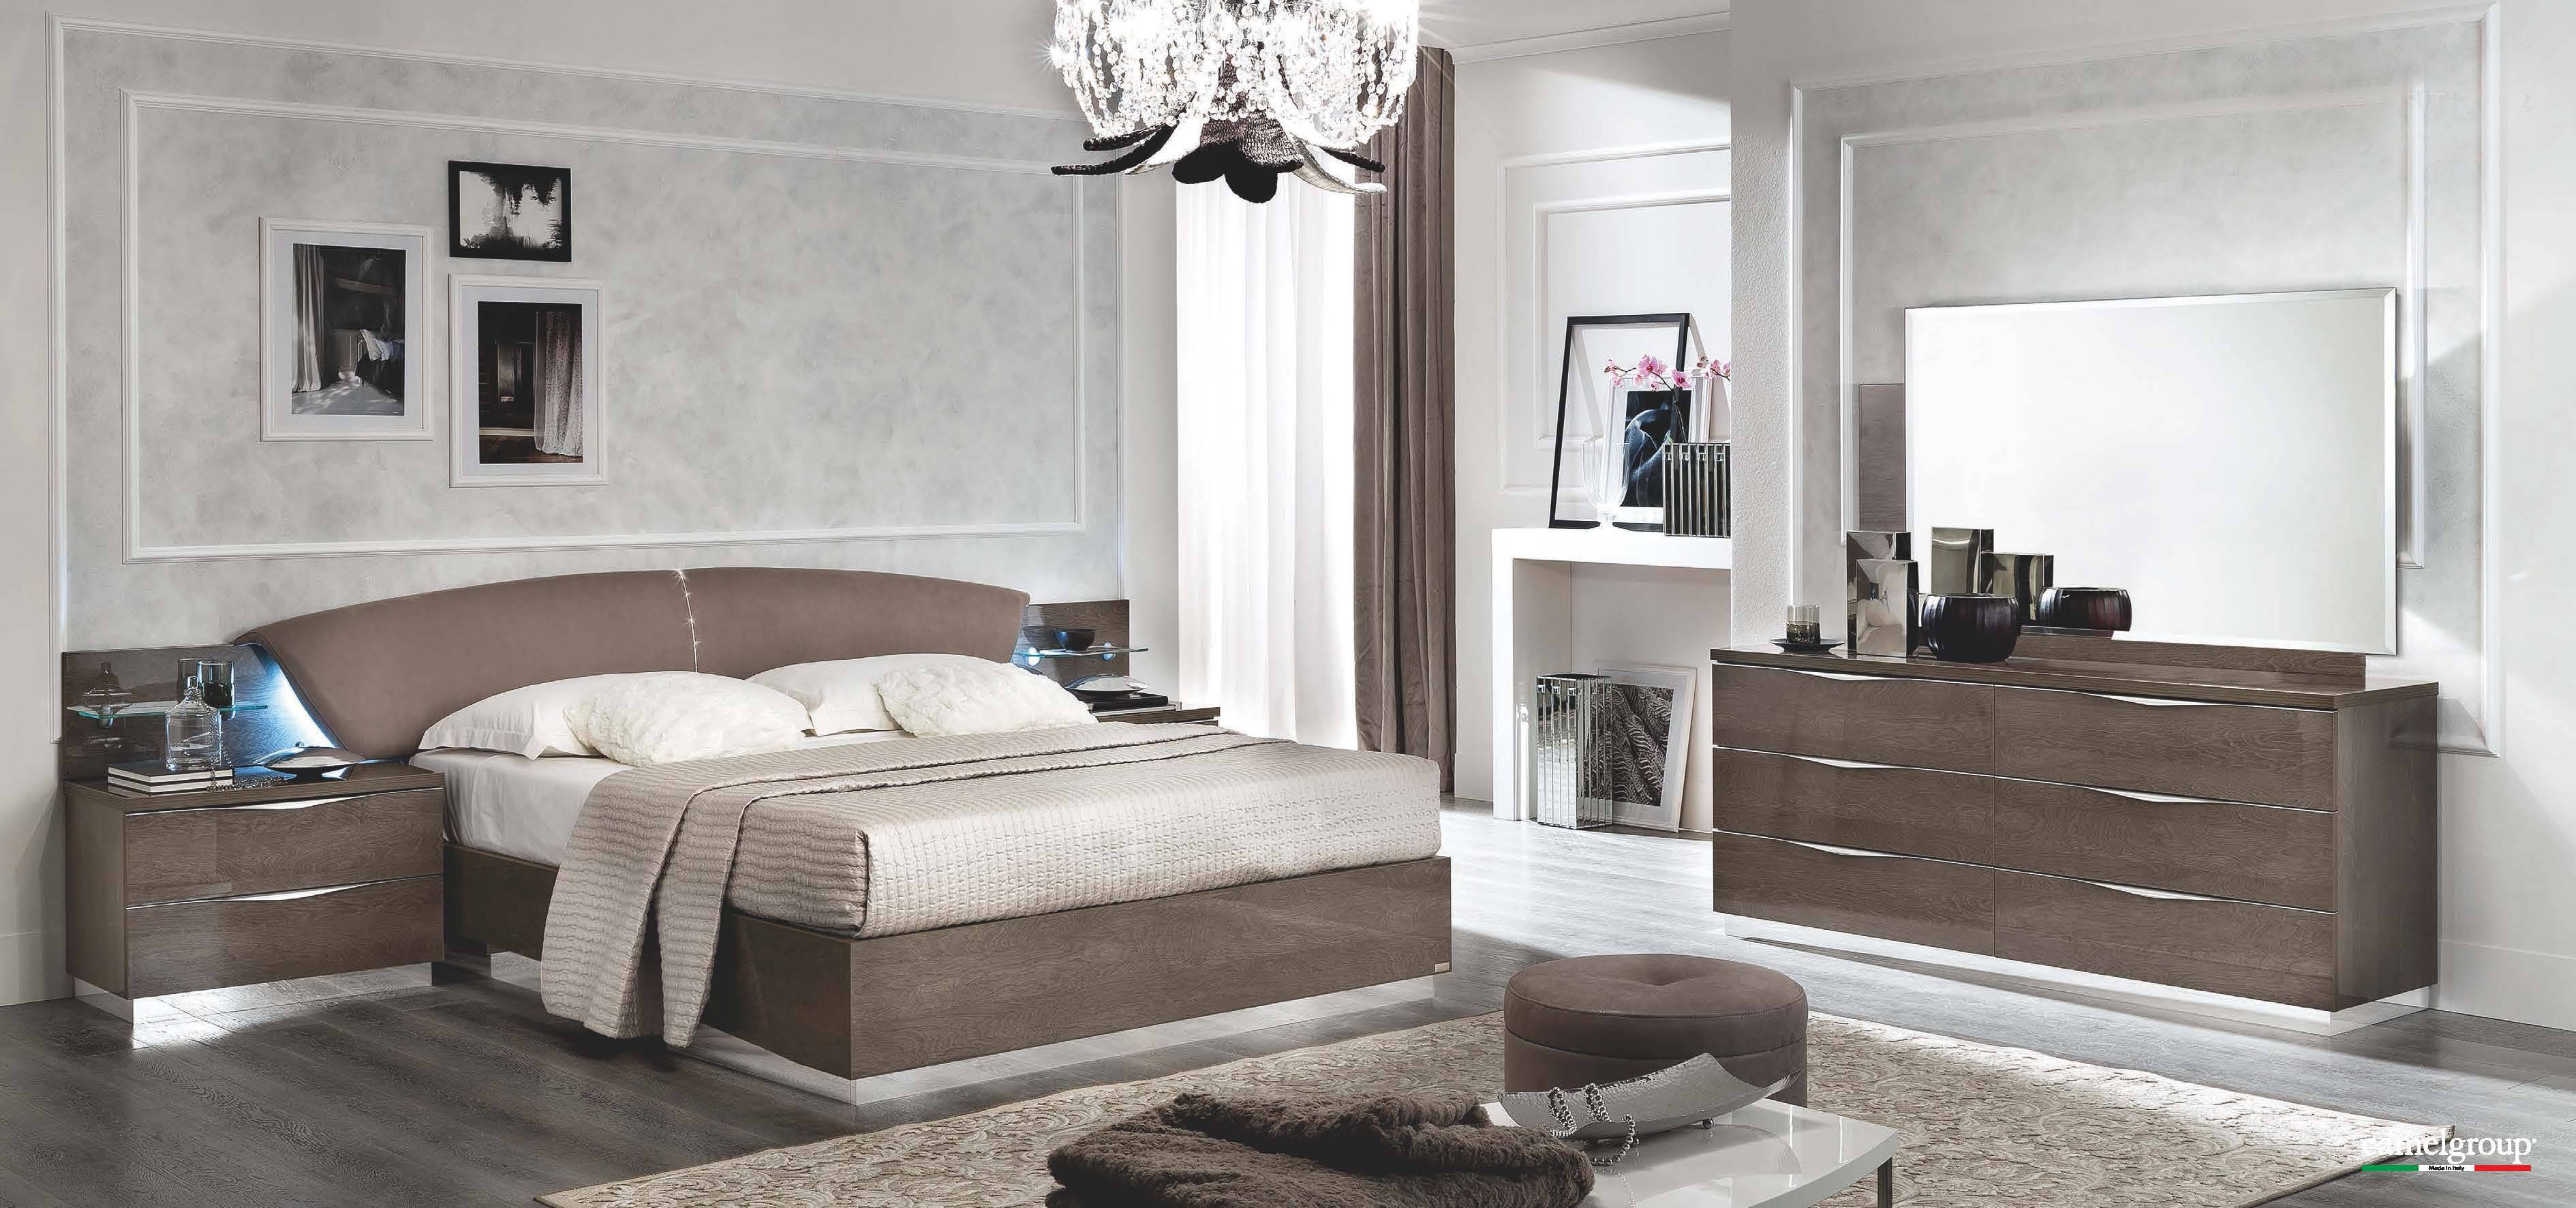 Italian Furniture Bedroom Made In Italy Quality Design Bedroom Furniture